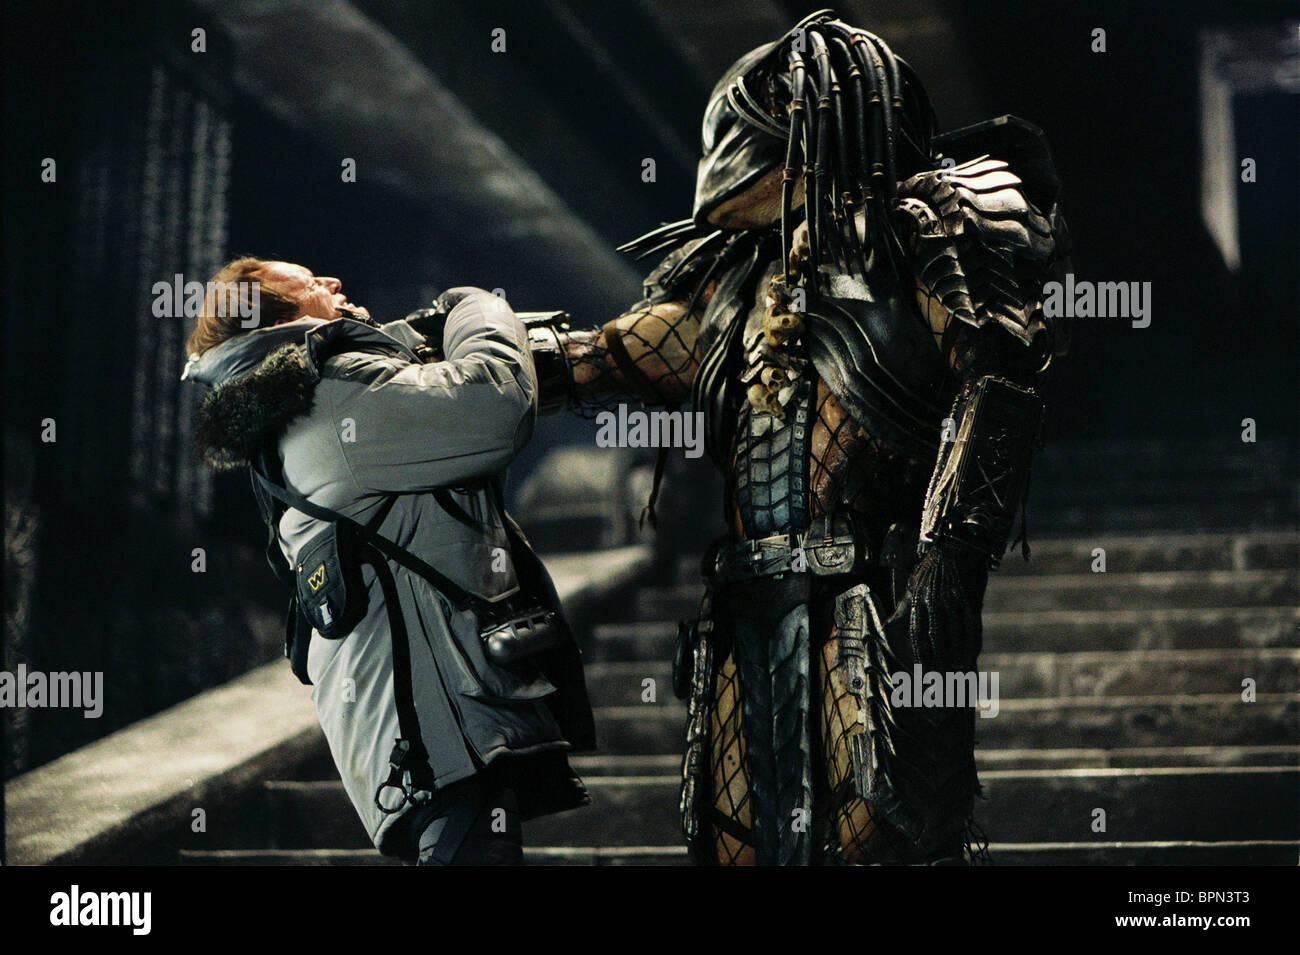 aliens vs predator 3 - photo #35